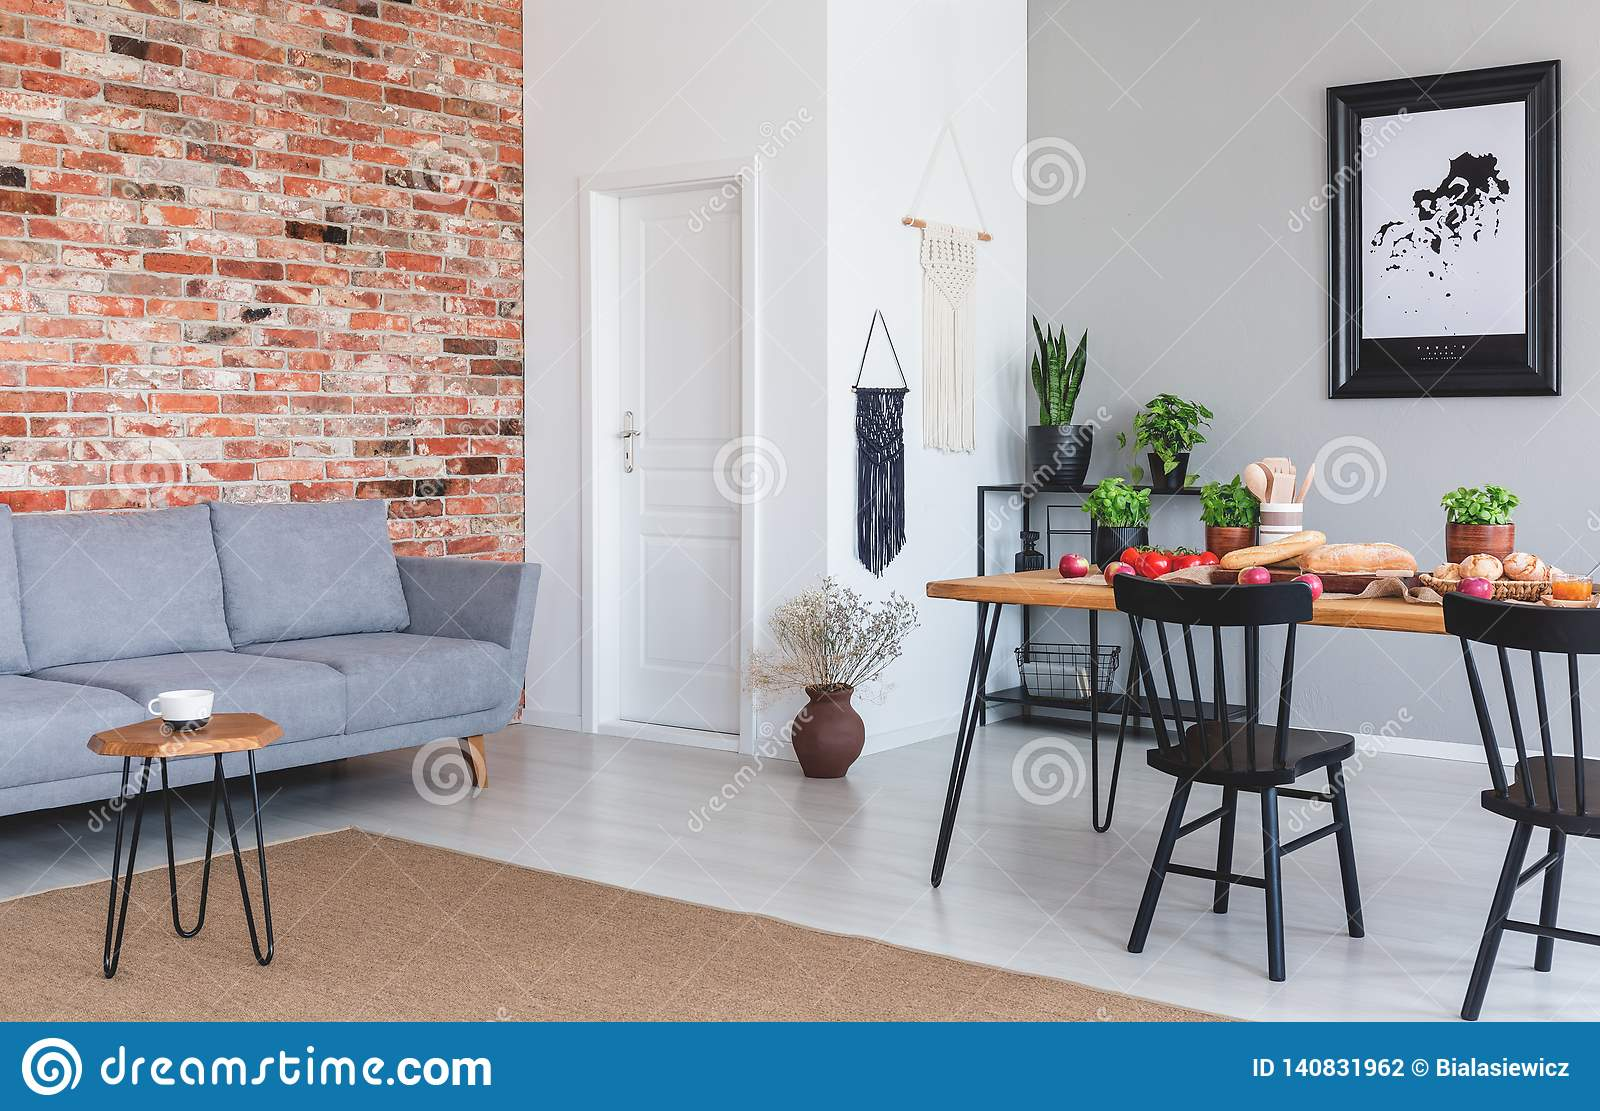 Grey Sofa Against Red Brick Wall In Flat Interior With